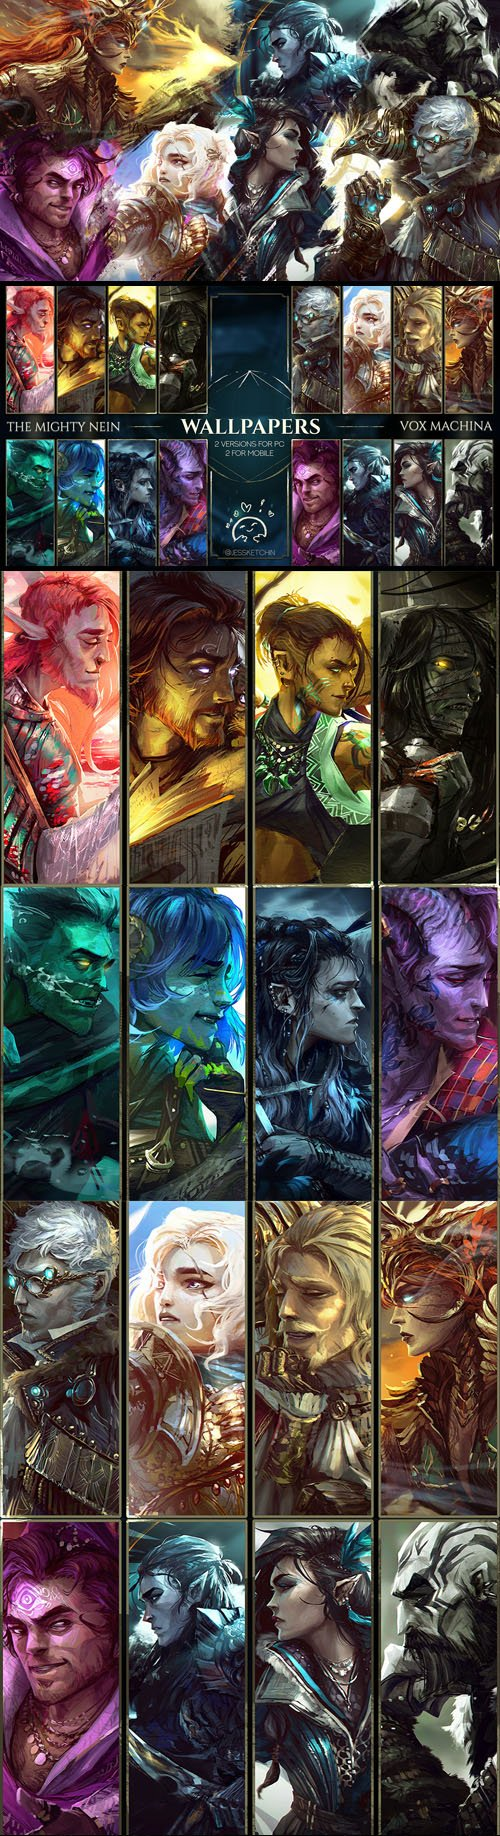 The Mighty Nein & Vox Machina - Mega Wallpaper Pack (PC/Mobile)